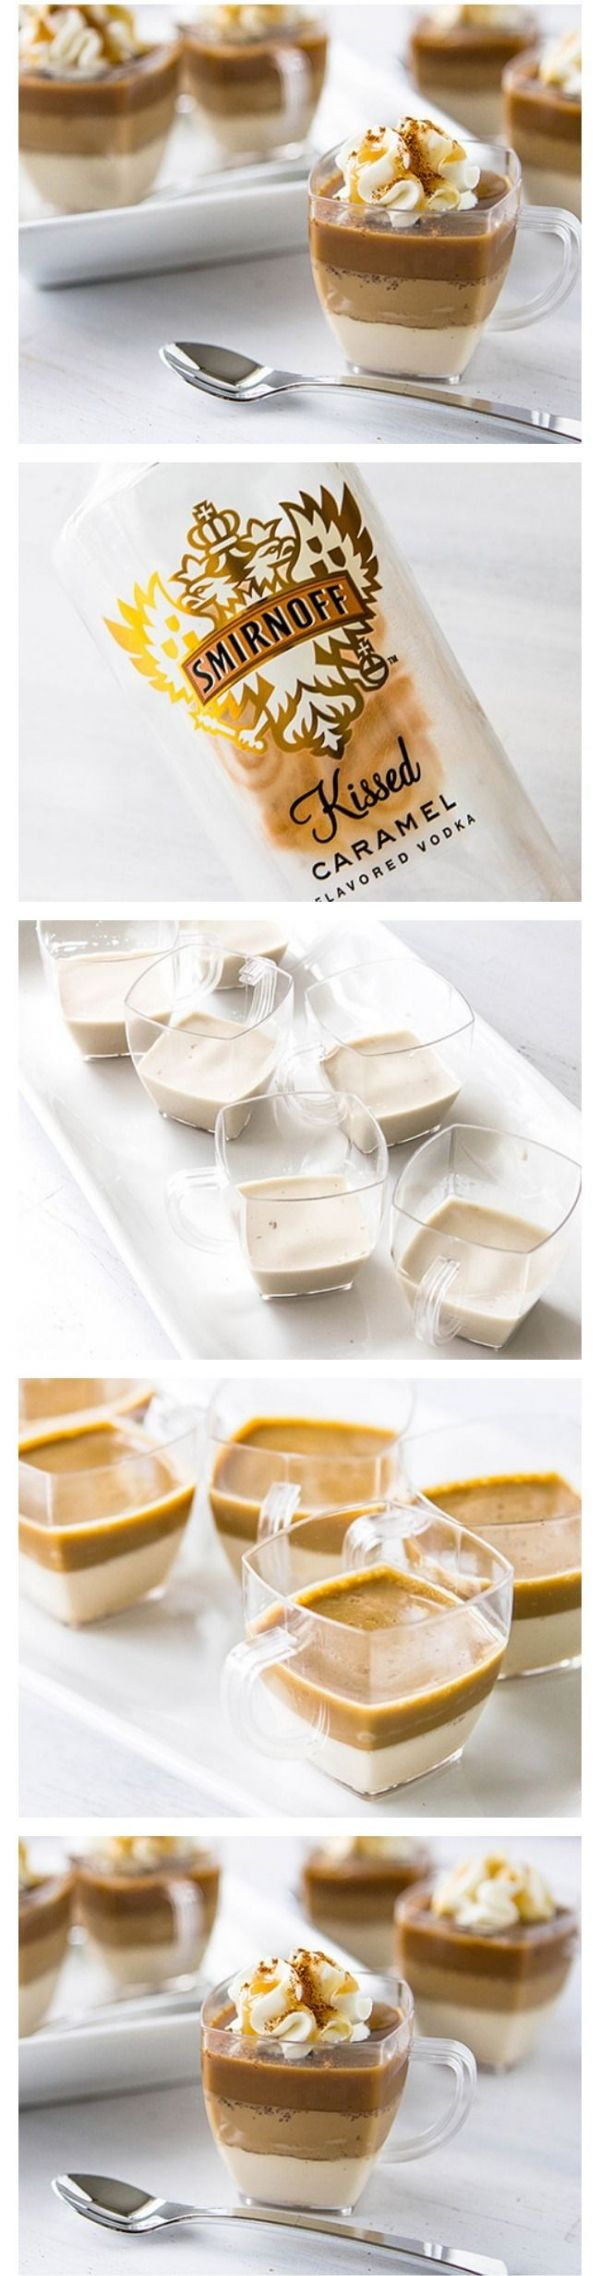 These Jell-O Shot Recipes Will Make Your Party Pop ...